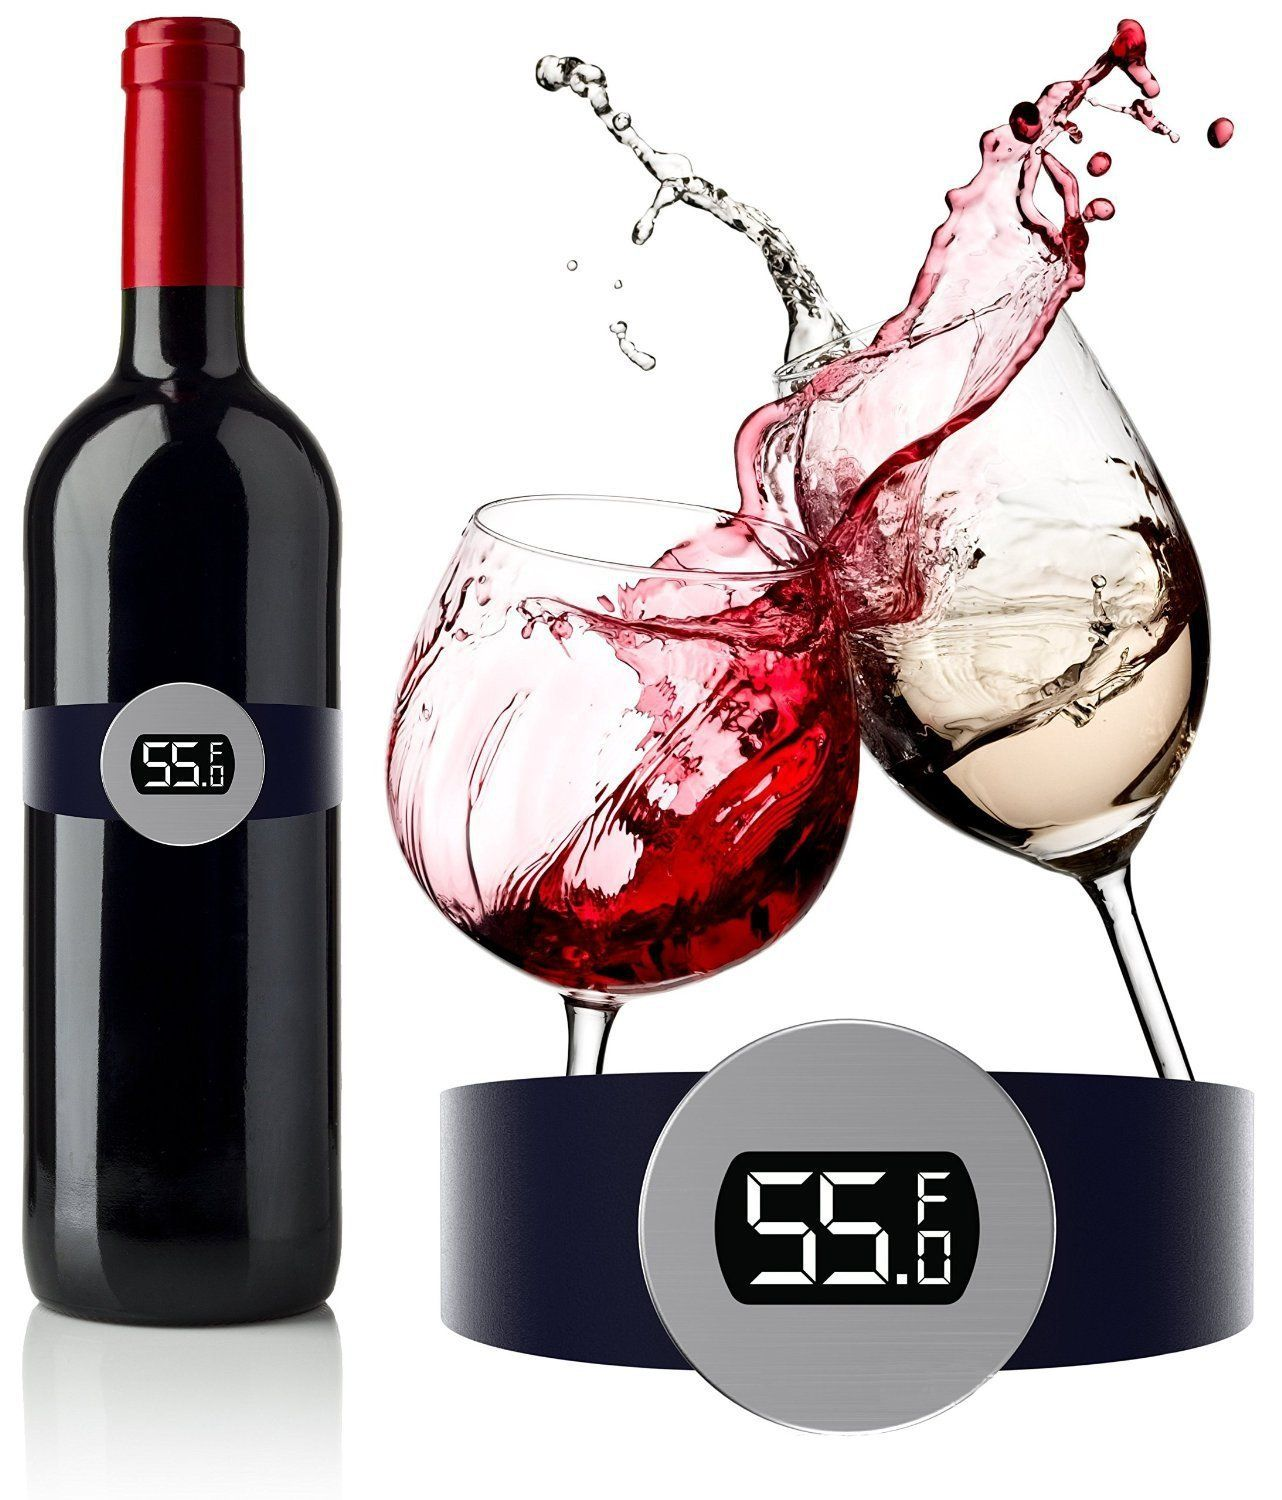 Cnb S Wine Thermometer Best Wine Gift Accessory For Any Wine Enthusiast To Serve Your Bottles At The Correct Wine Temperature Wine Gifts Wine Wine Bottle